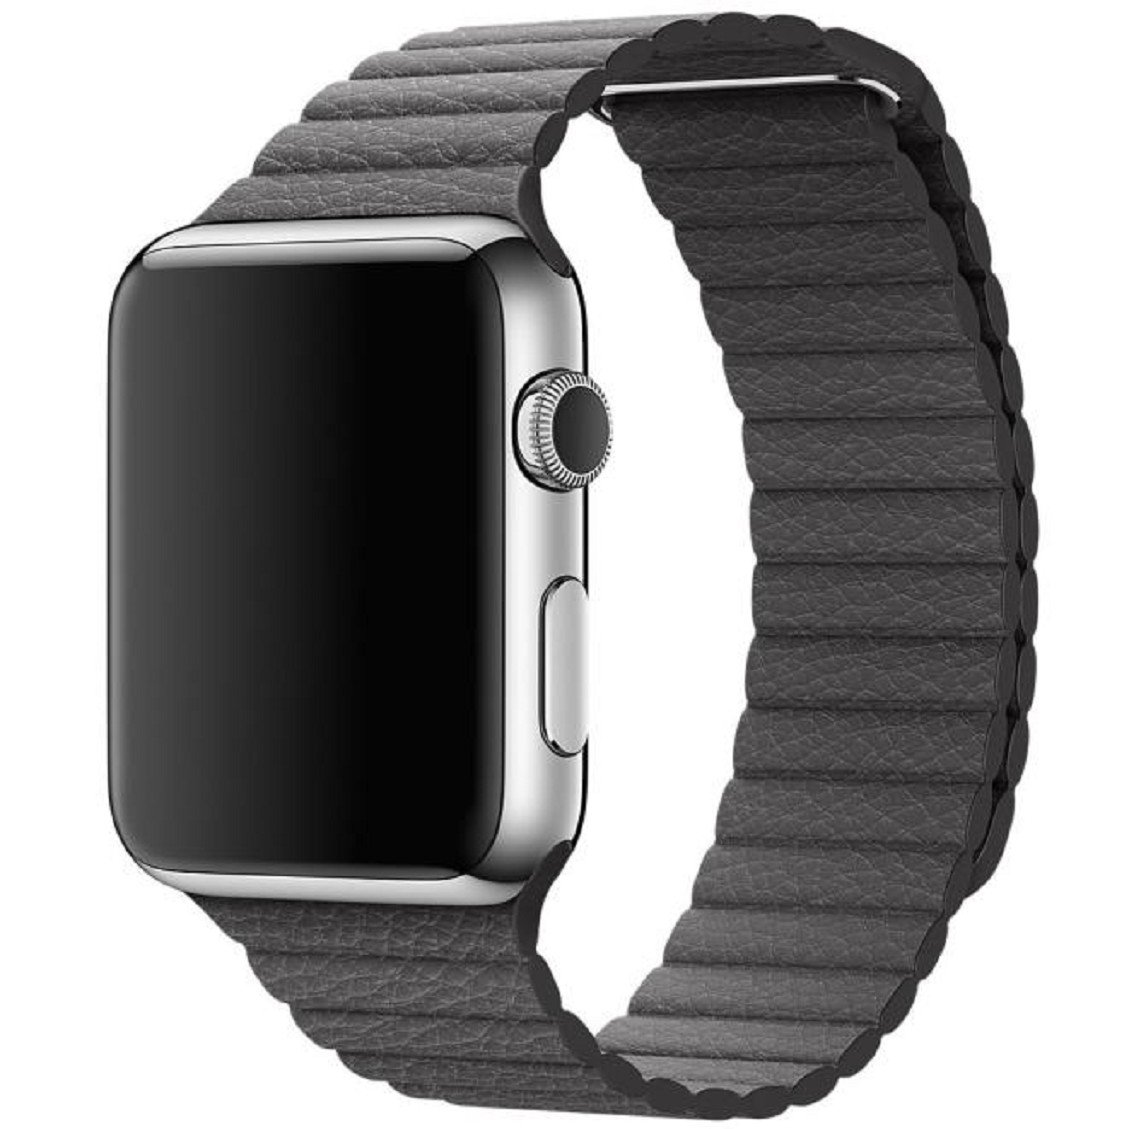 Ouneed For Apple Watch 42mm Cuero Genuino Loop Tipo Venda de Reloj de la Correa del Reloj para Apple 42mm (Gris): Amazon.es: Deportes y aire libre